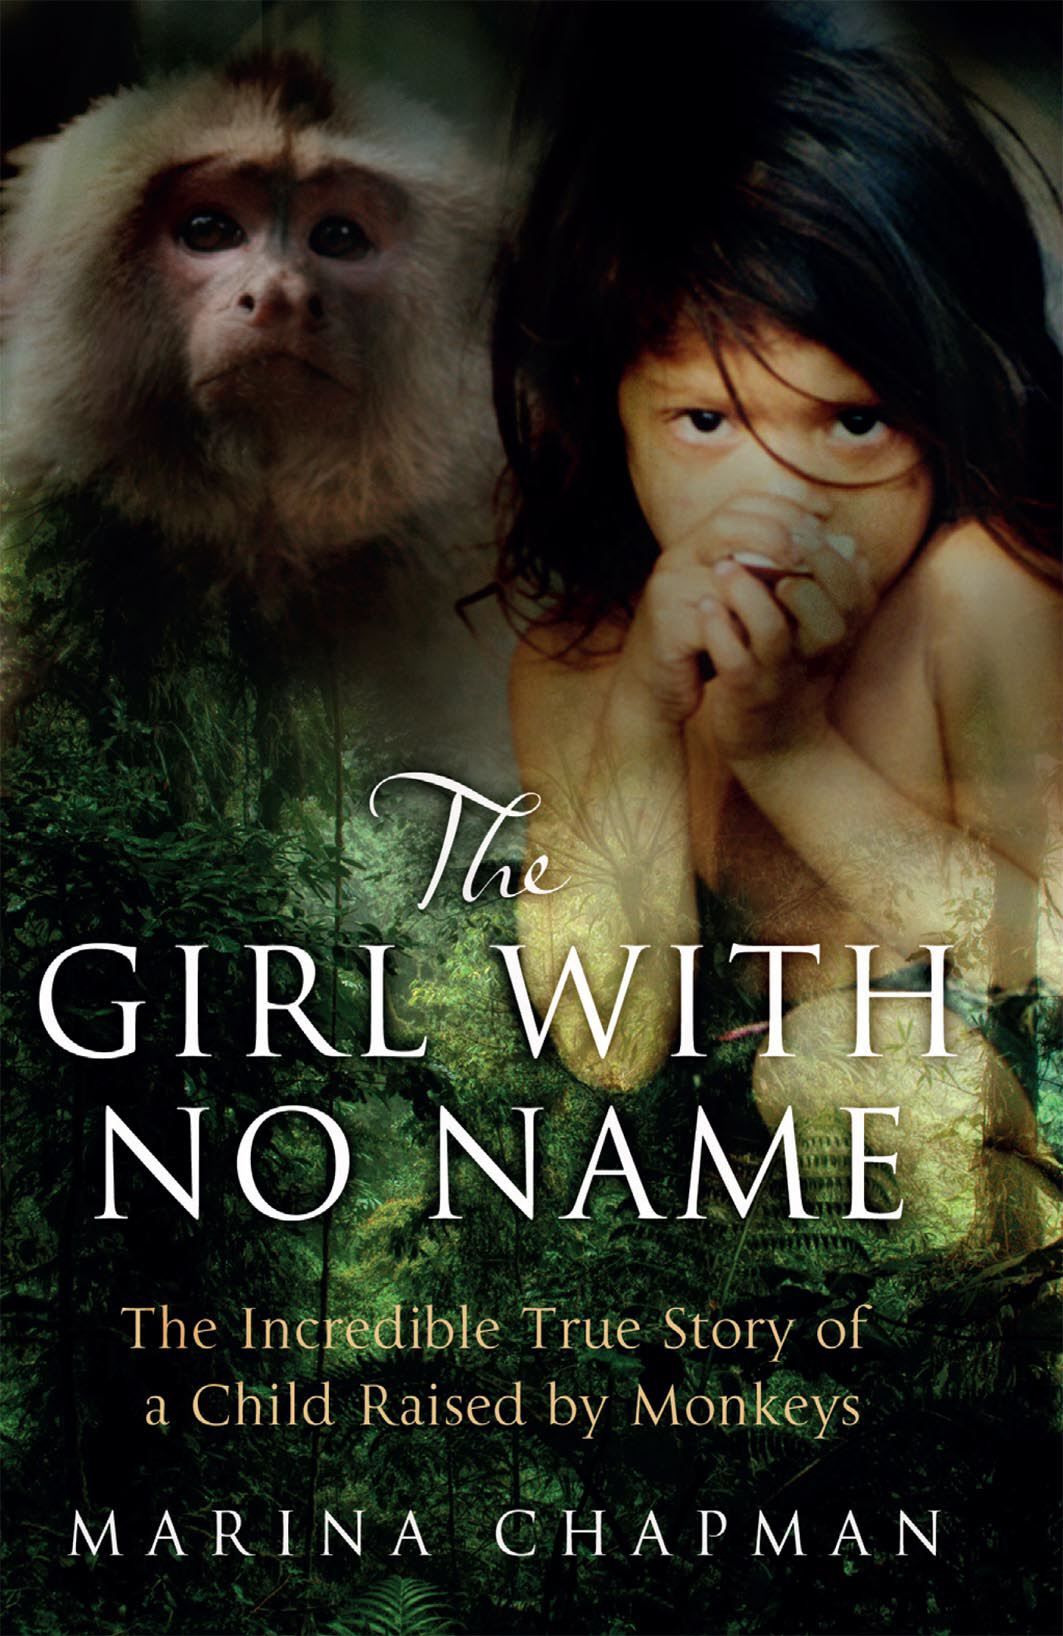 The Girl with No Name The Incredible True Story of a Child Raised by Monkeys